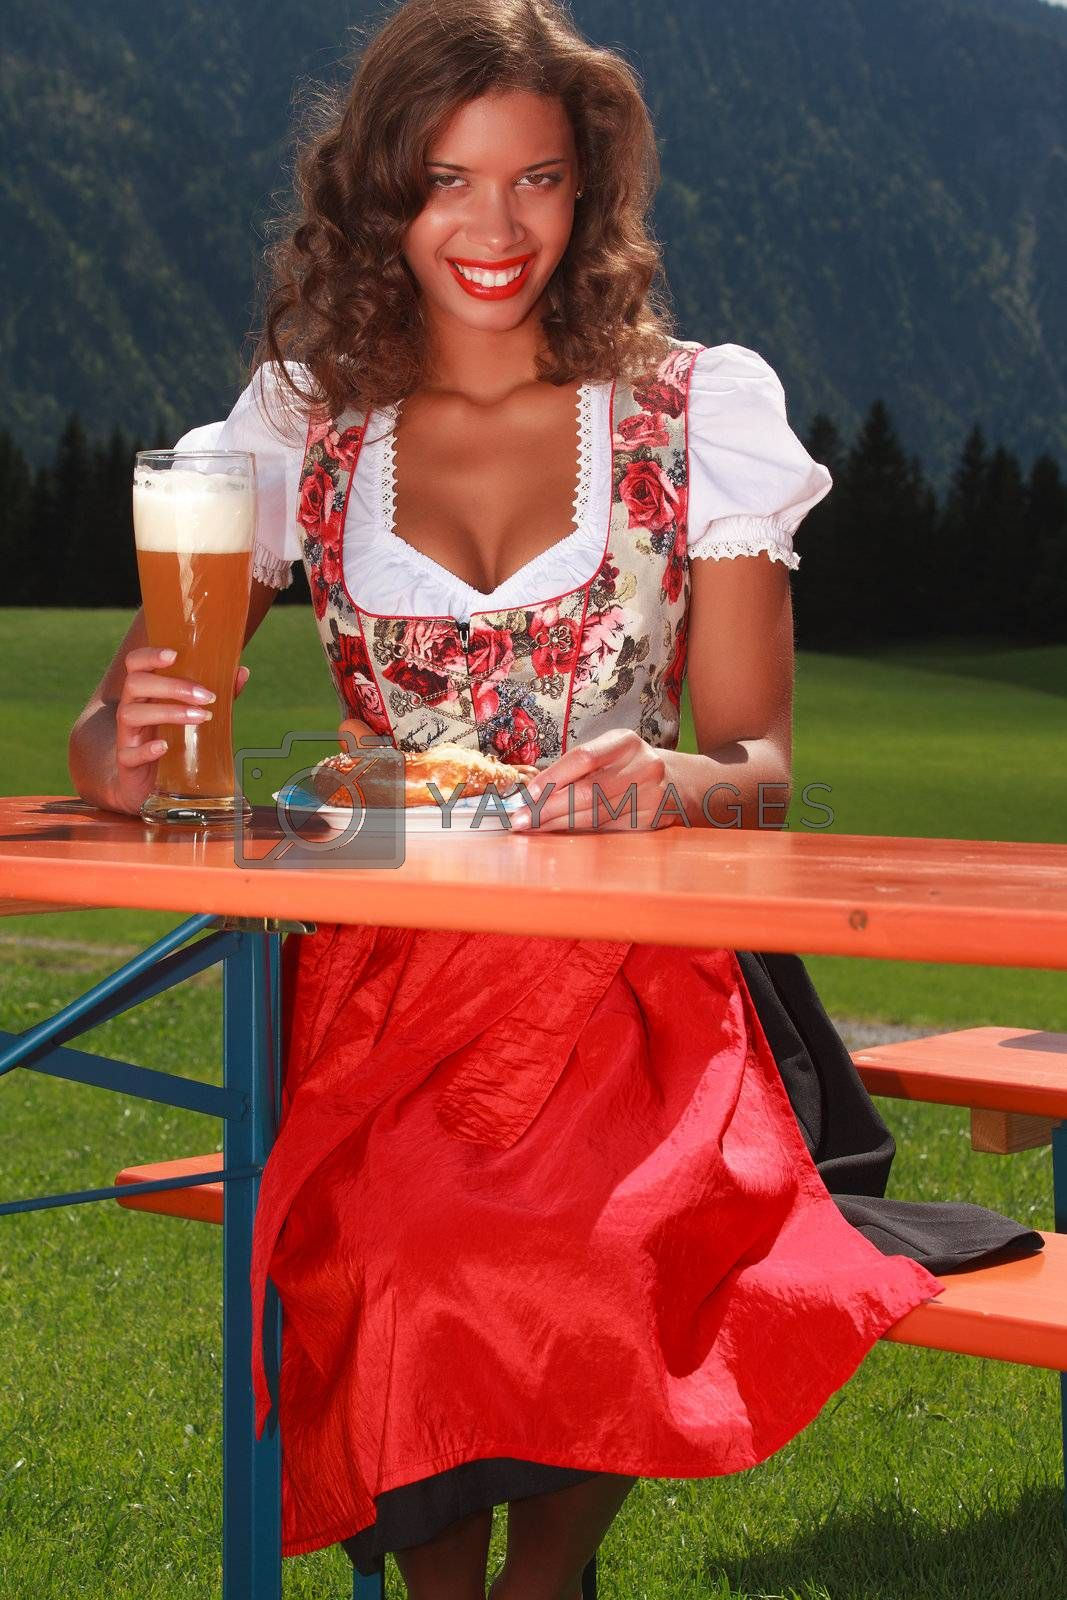 Bavarian girl eat and drink when in costume